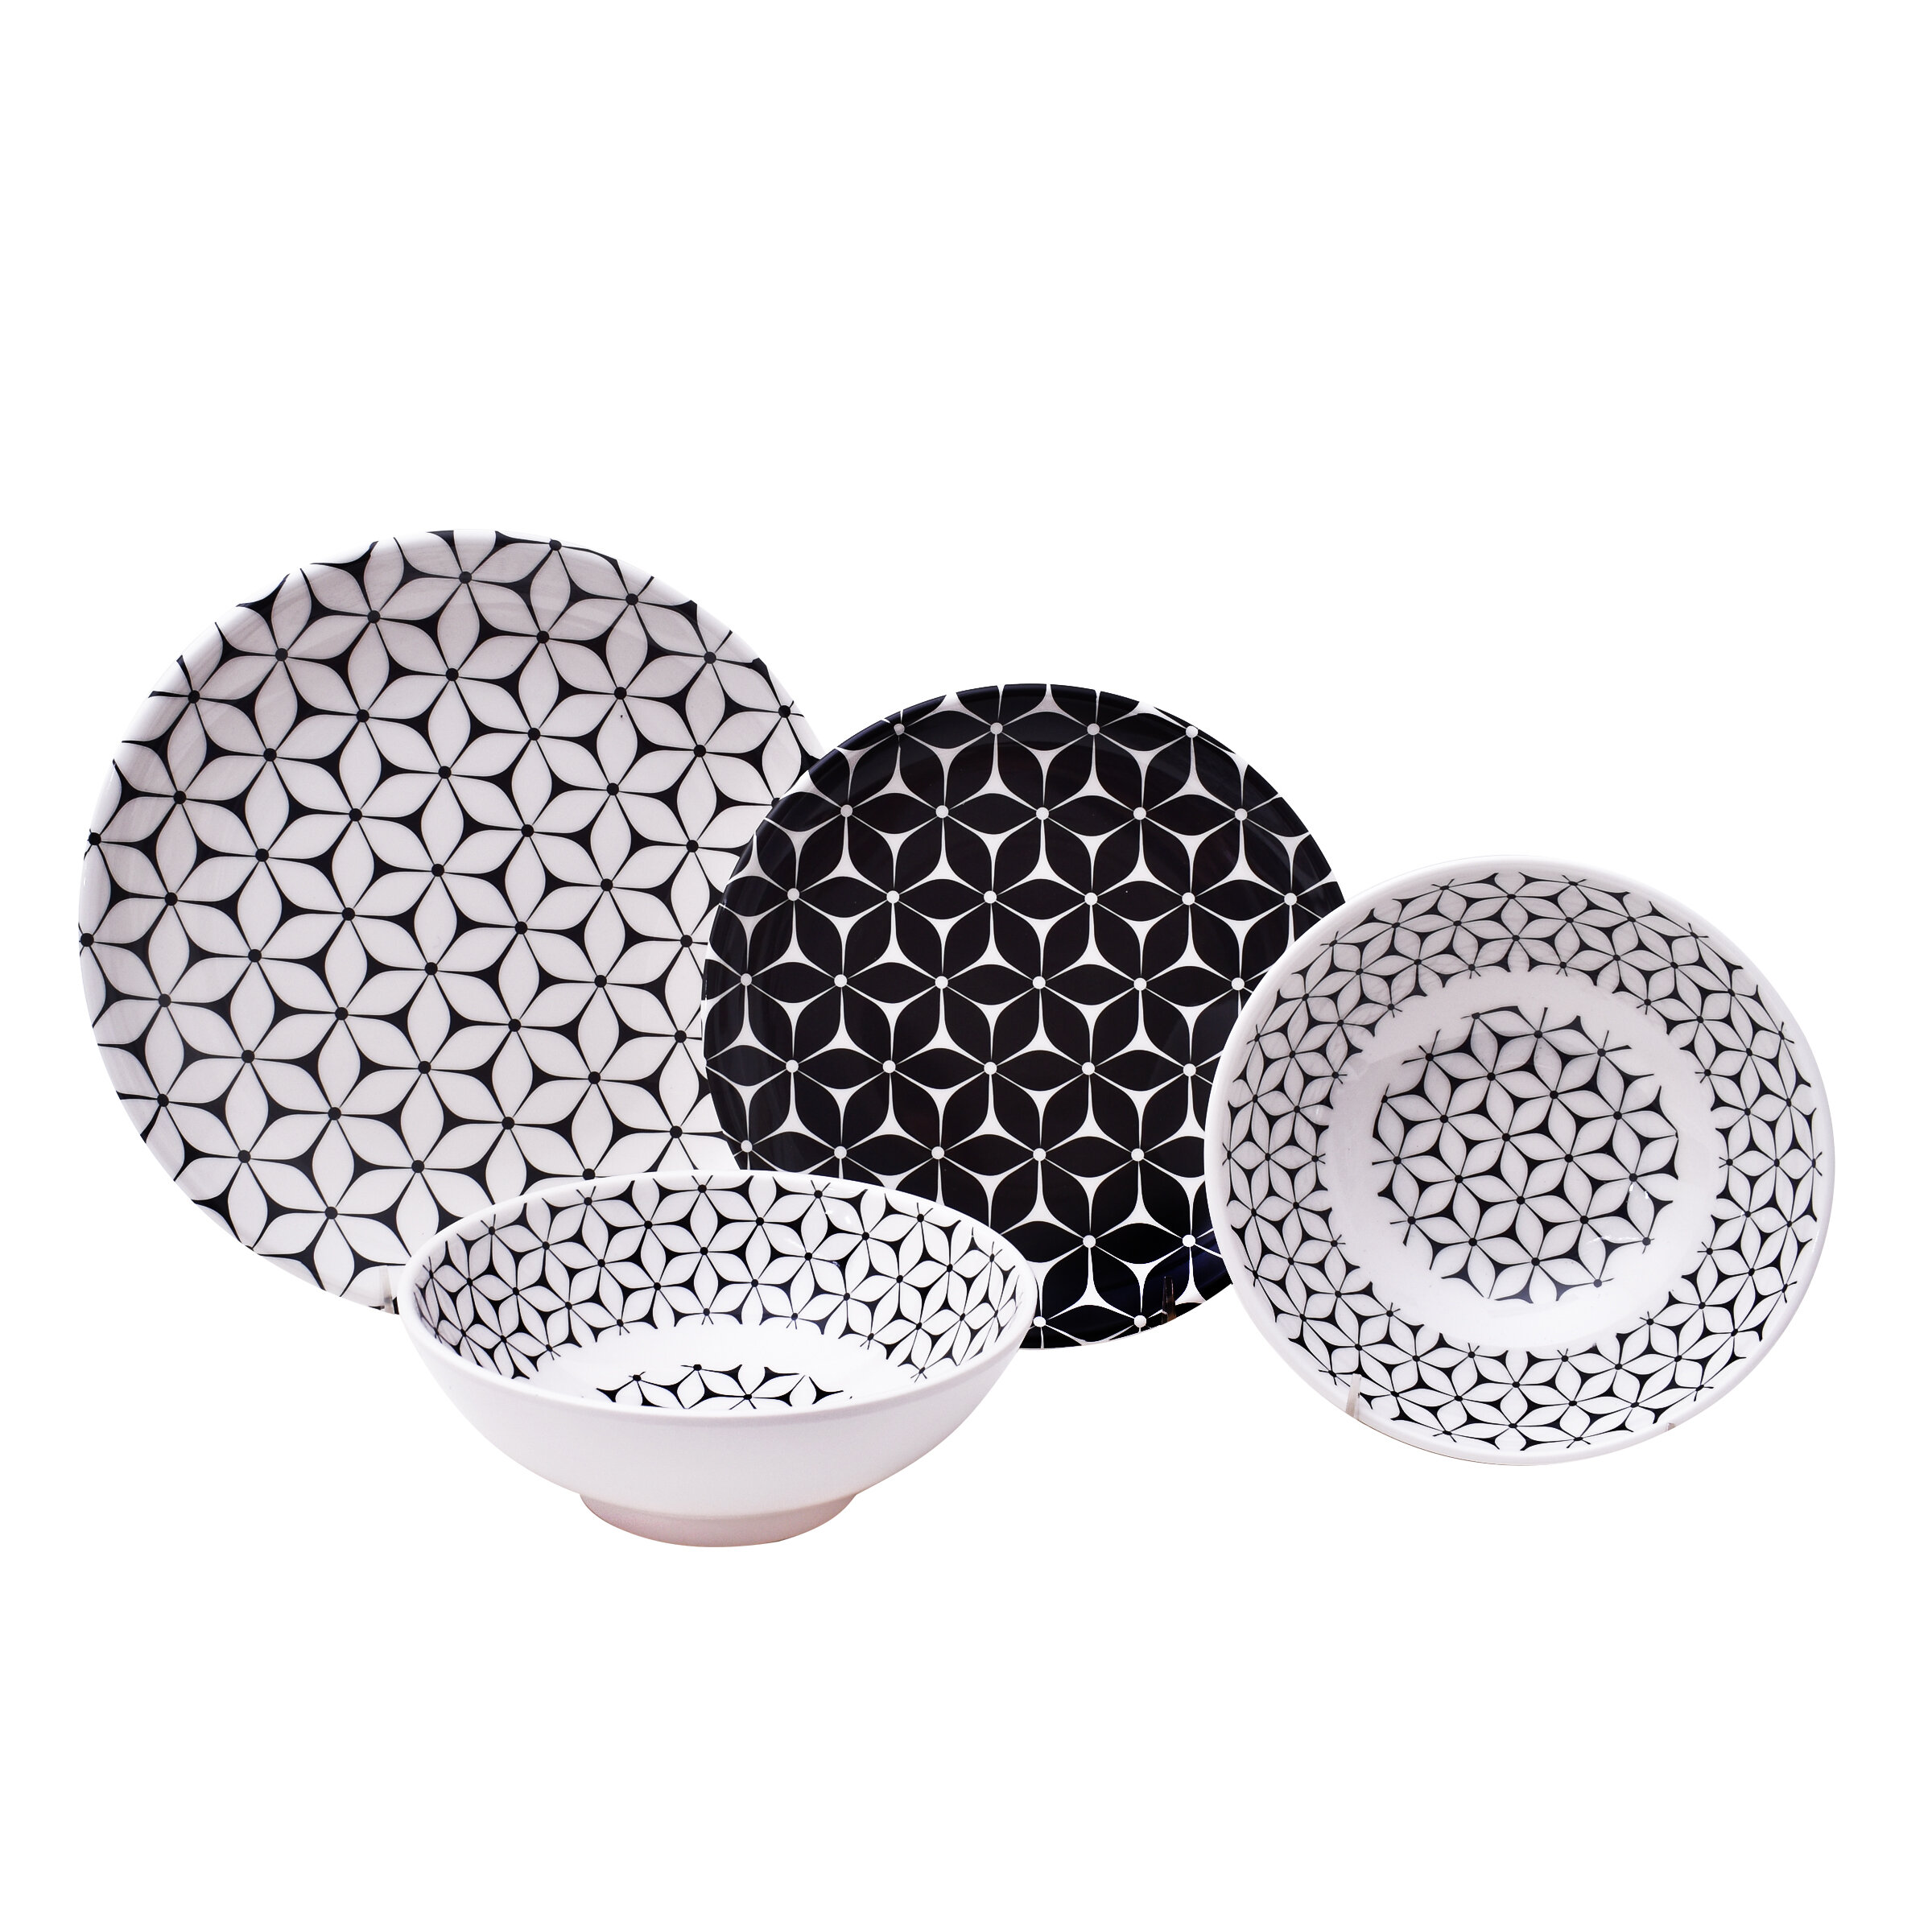 617583845be Strata 12 Piece Melamine Dinnerware Set